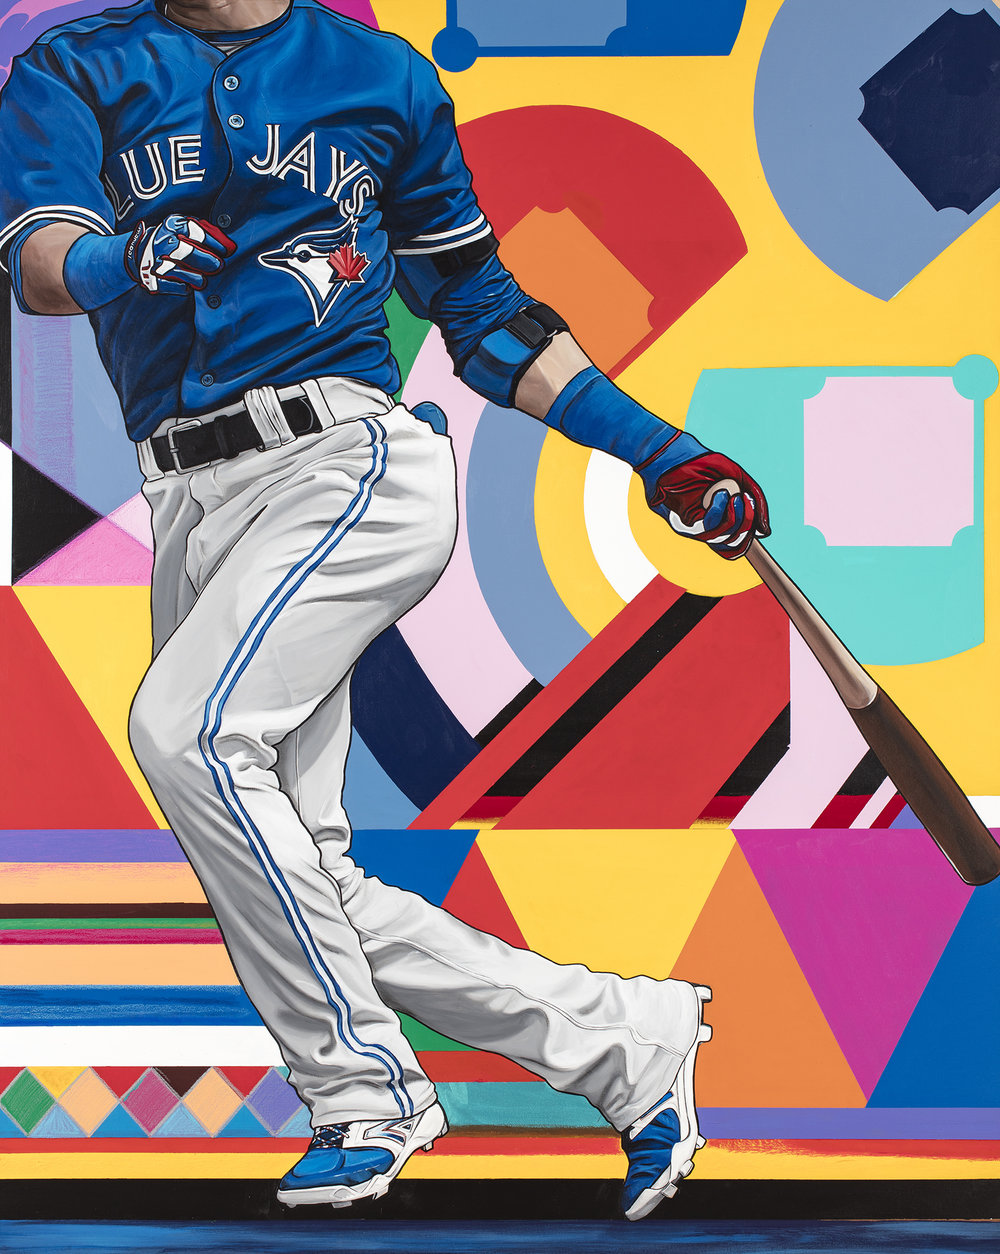 JOEY BATS BY SAMARA SHUTER 2016 BLUE JAYS.jpg